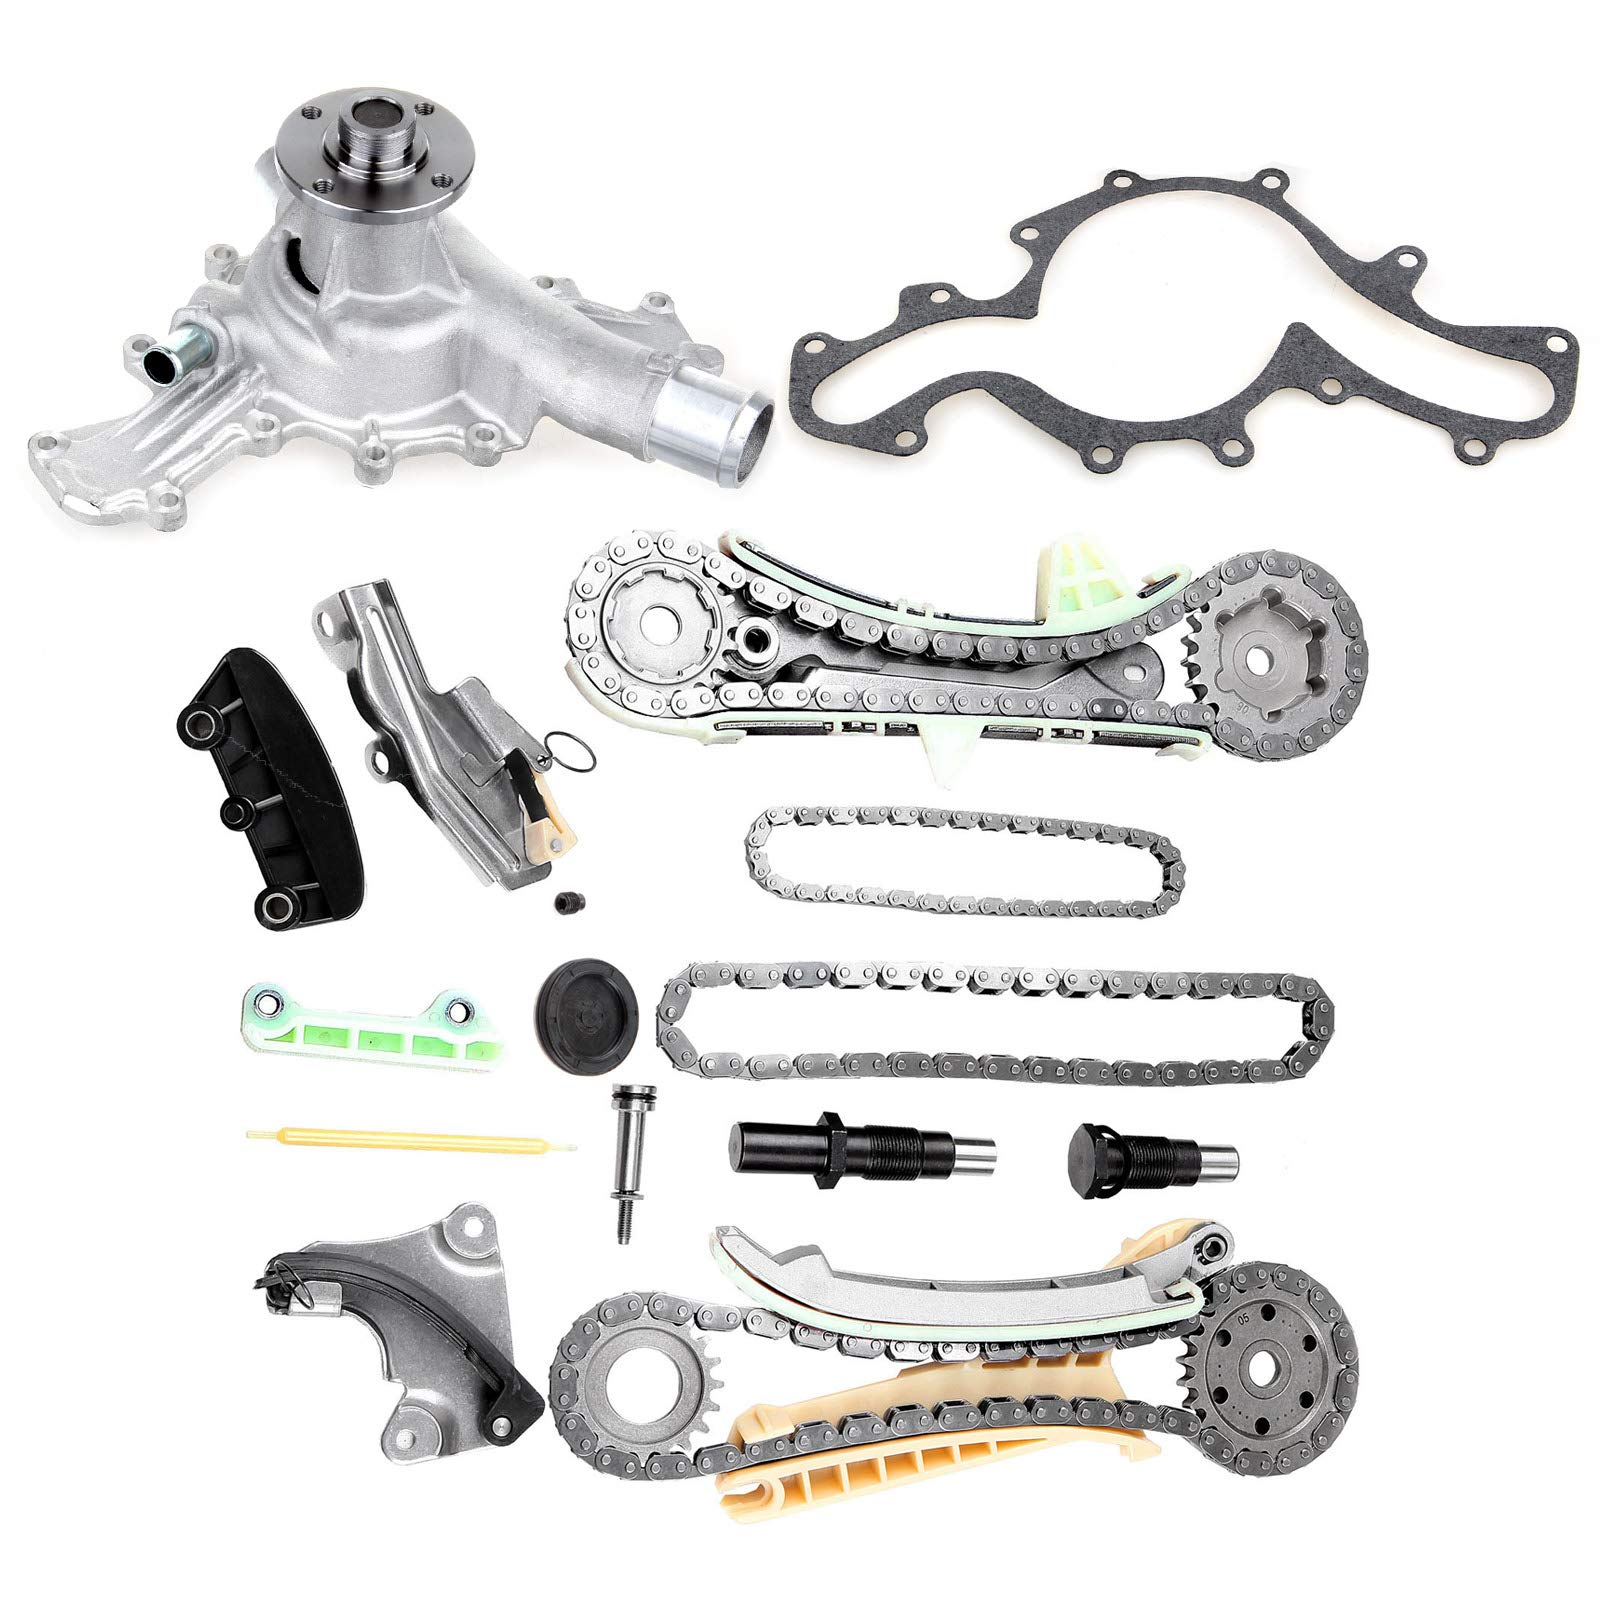 OCPTY TS20395F Timing Chain Kit w/Gears + Water Pump fits for 4.0L Ford Mazda Mercury SOHC V6 Engine by OCPTY